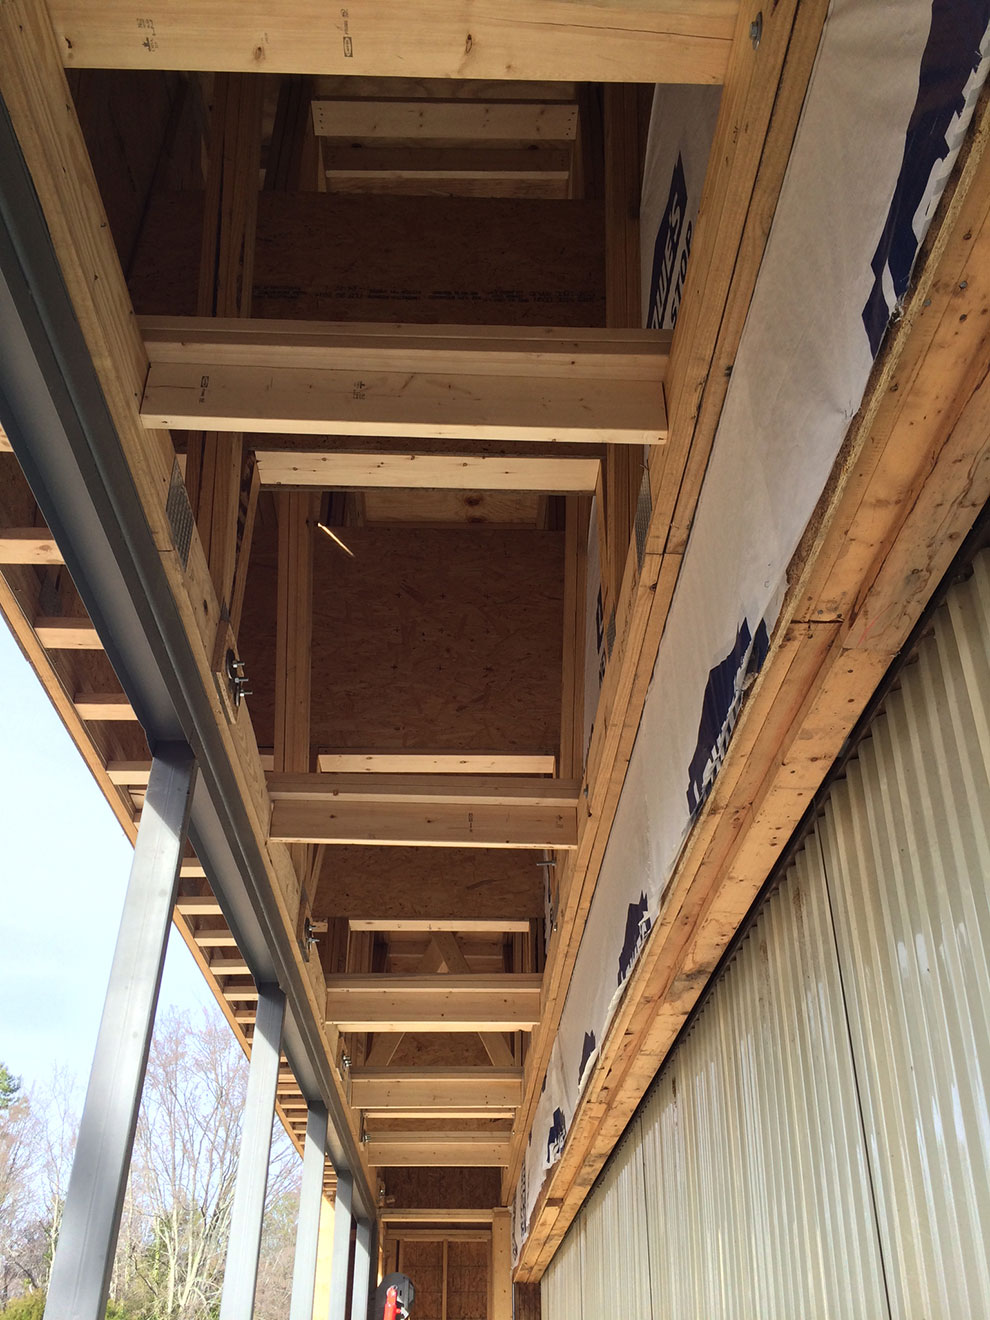 Reinforced framework on building to support large hydraulic door